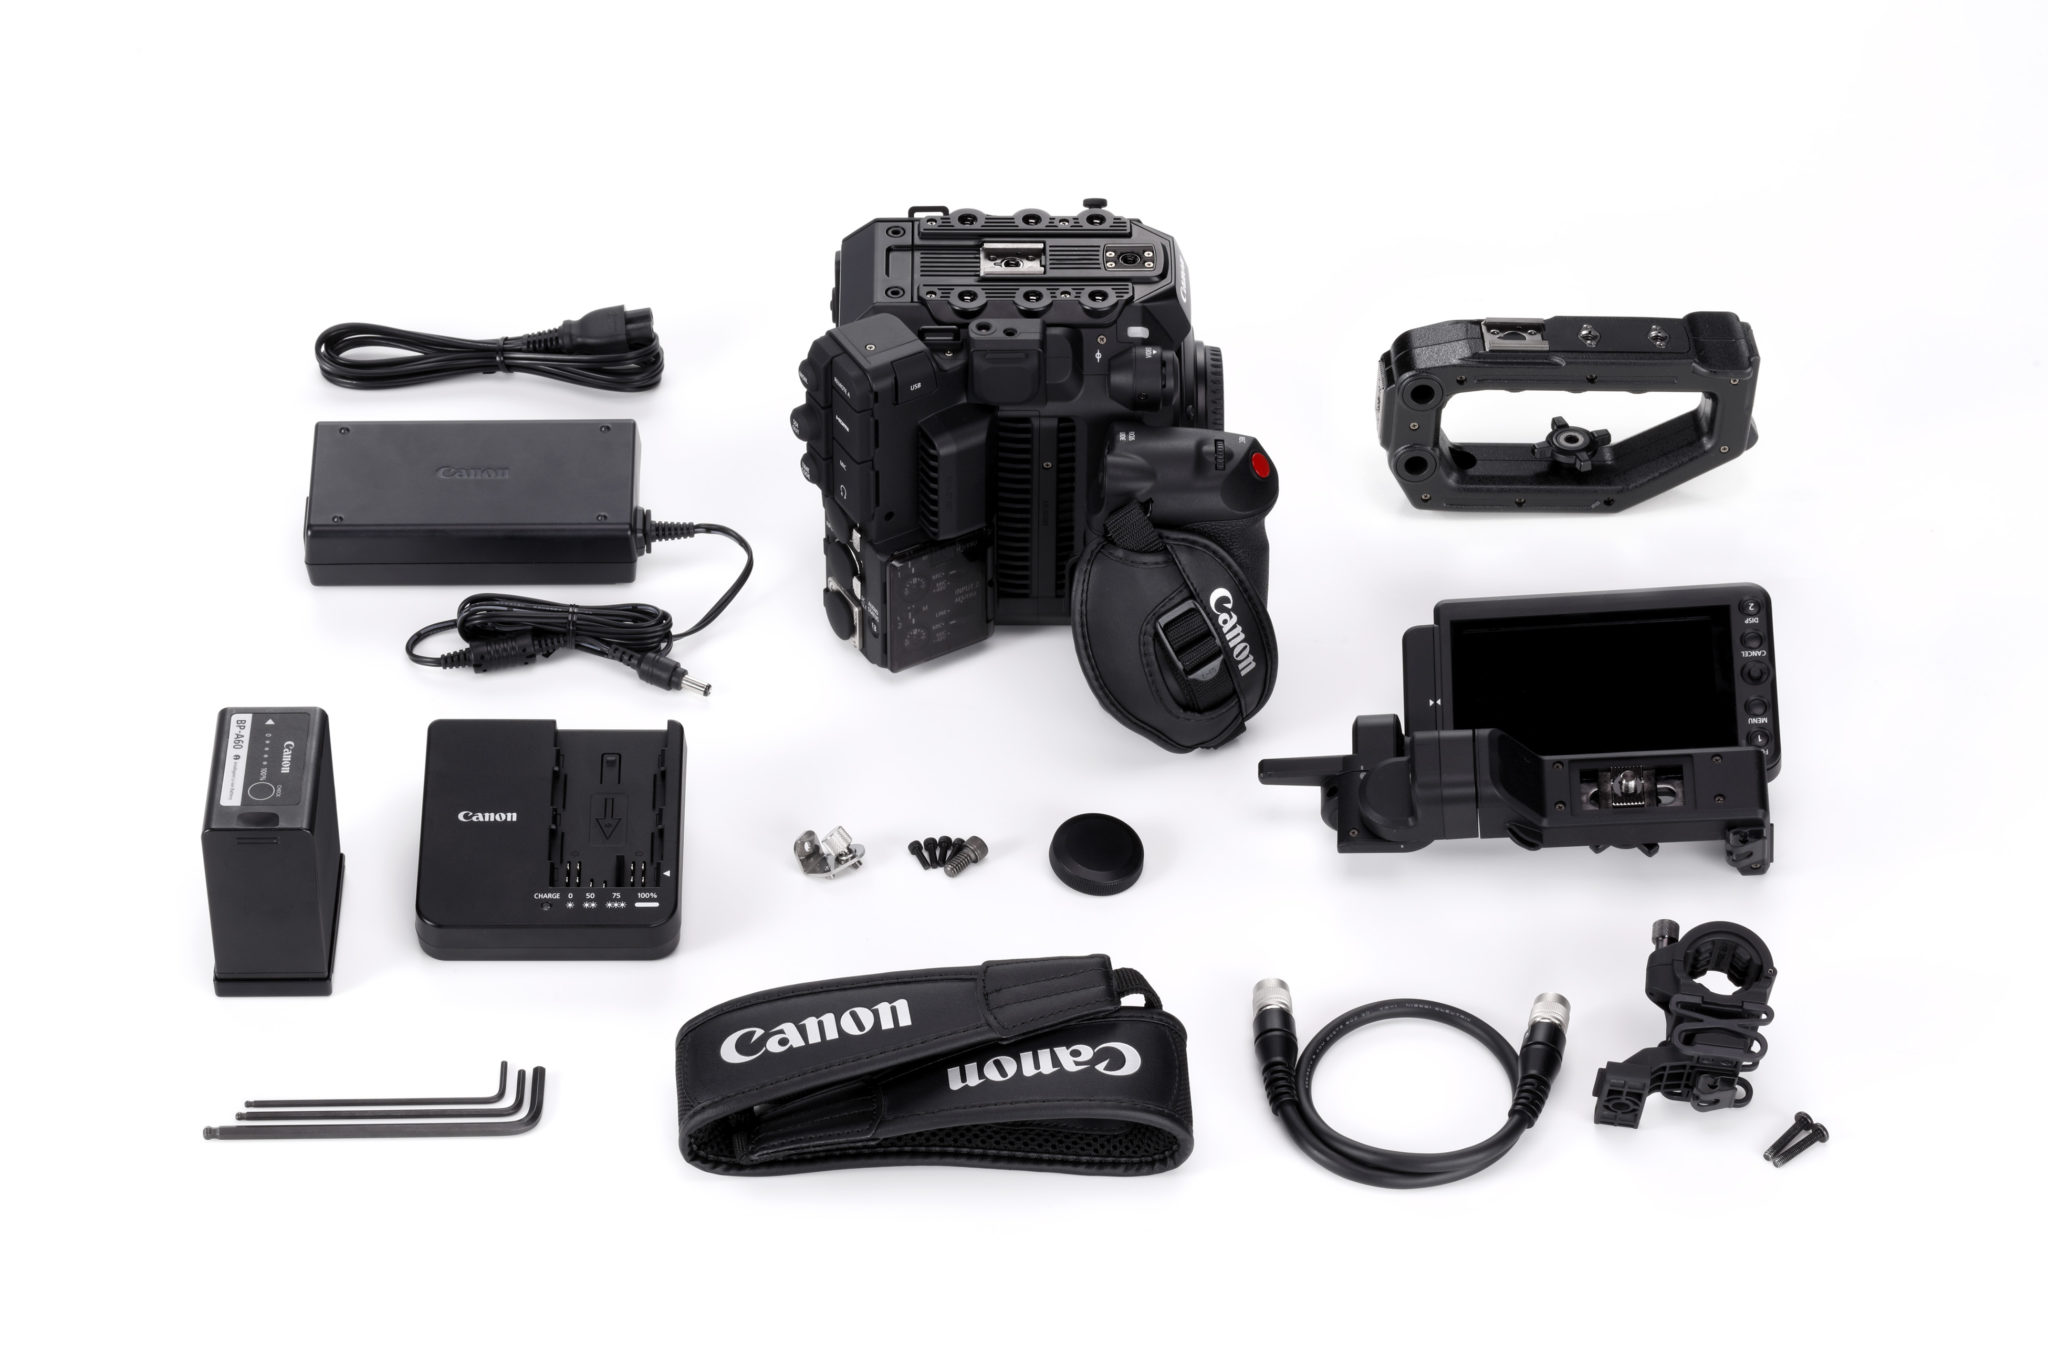 Canon C500 Mark II full kit